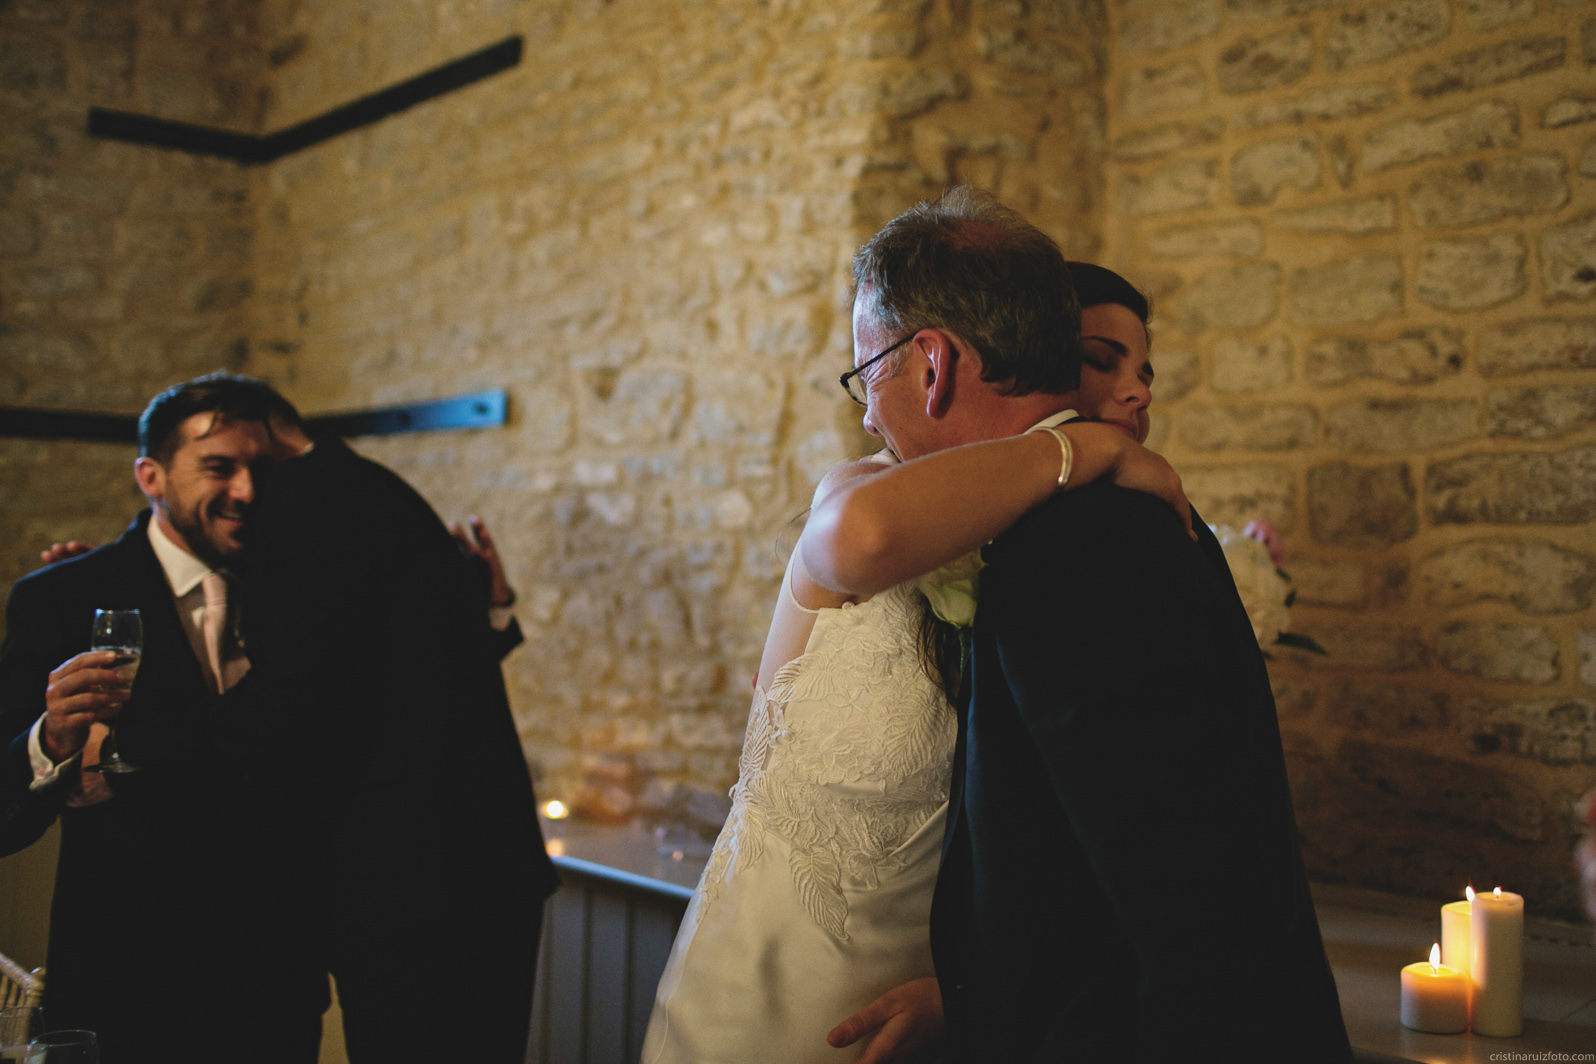 Wedding in Bath, wedding in wick farm bath, cristina ruiz foto, fotografos boda granada